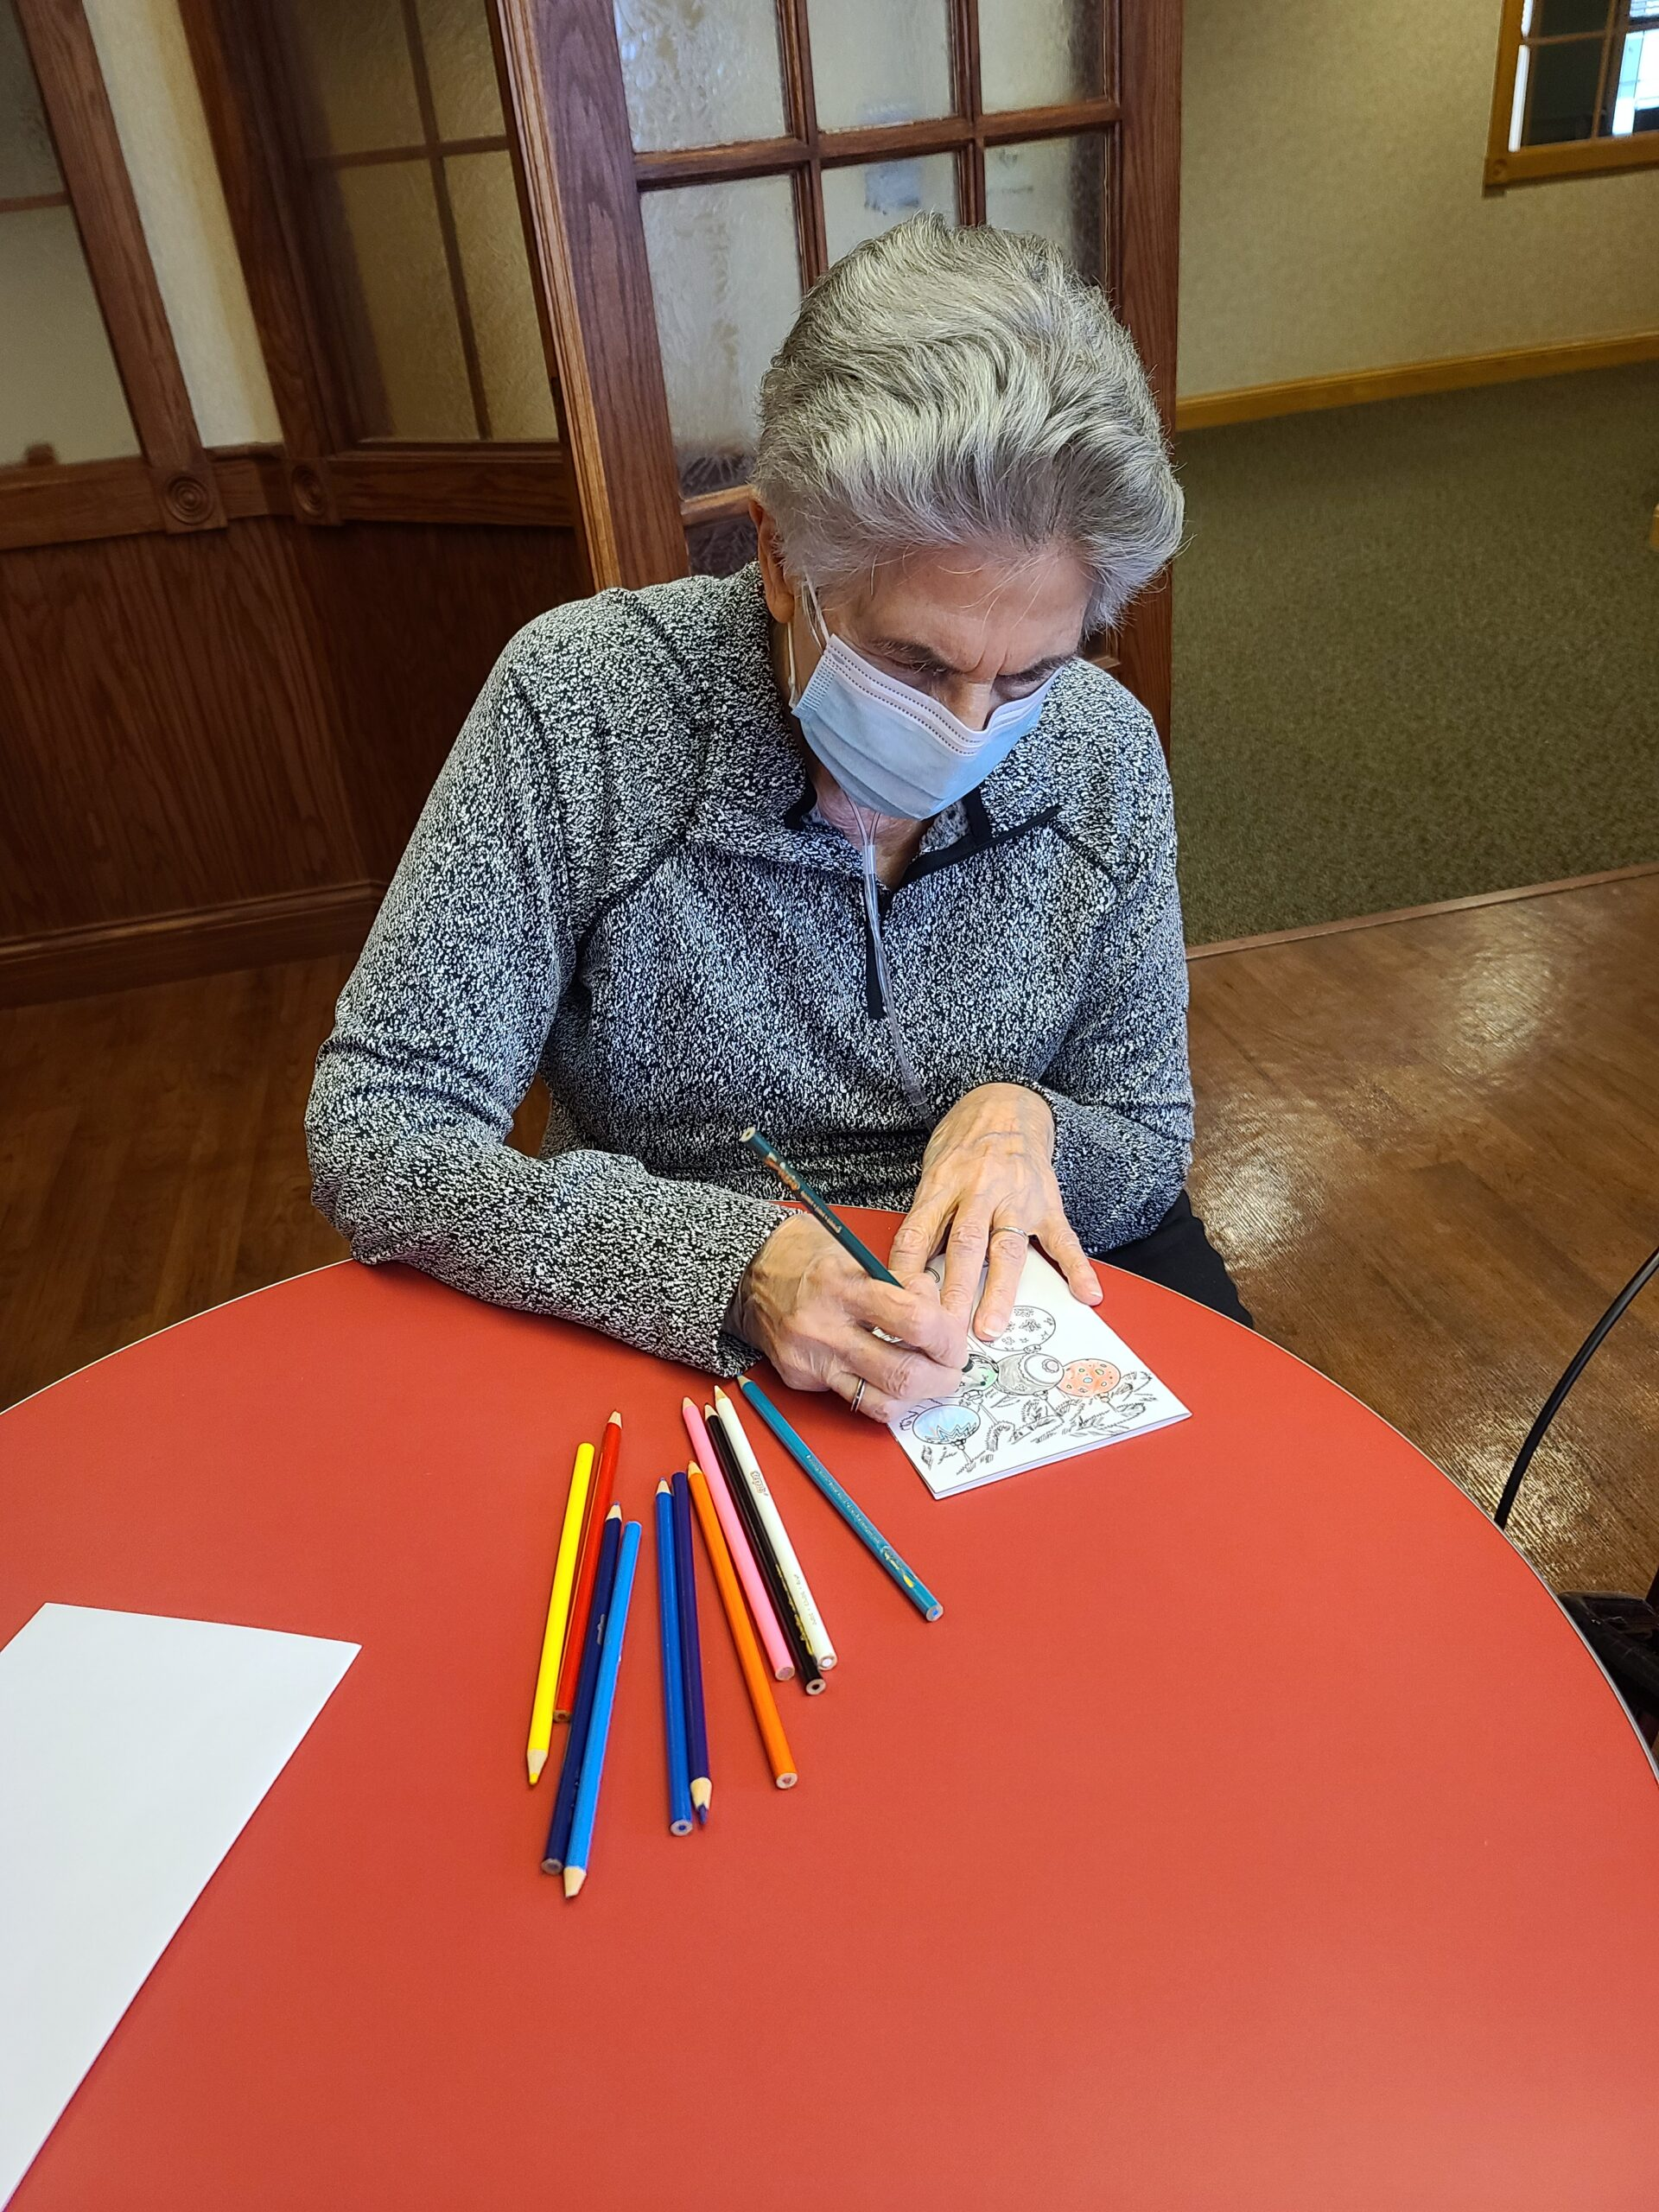 Josephine is coloring cards to pass out to her family!